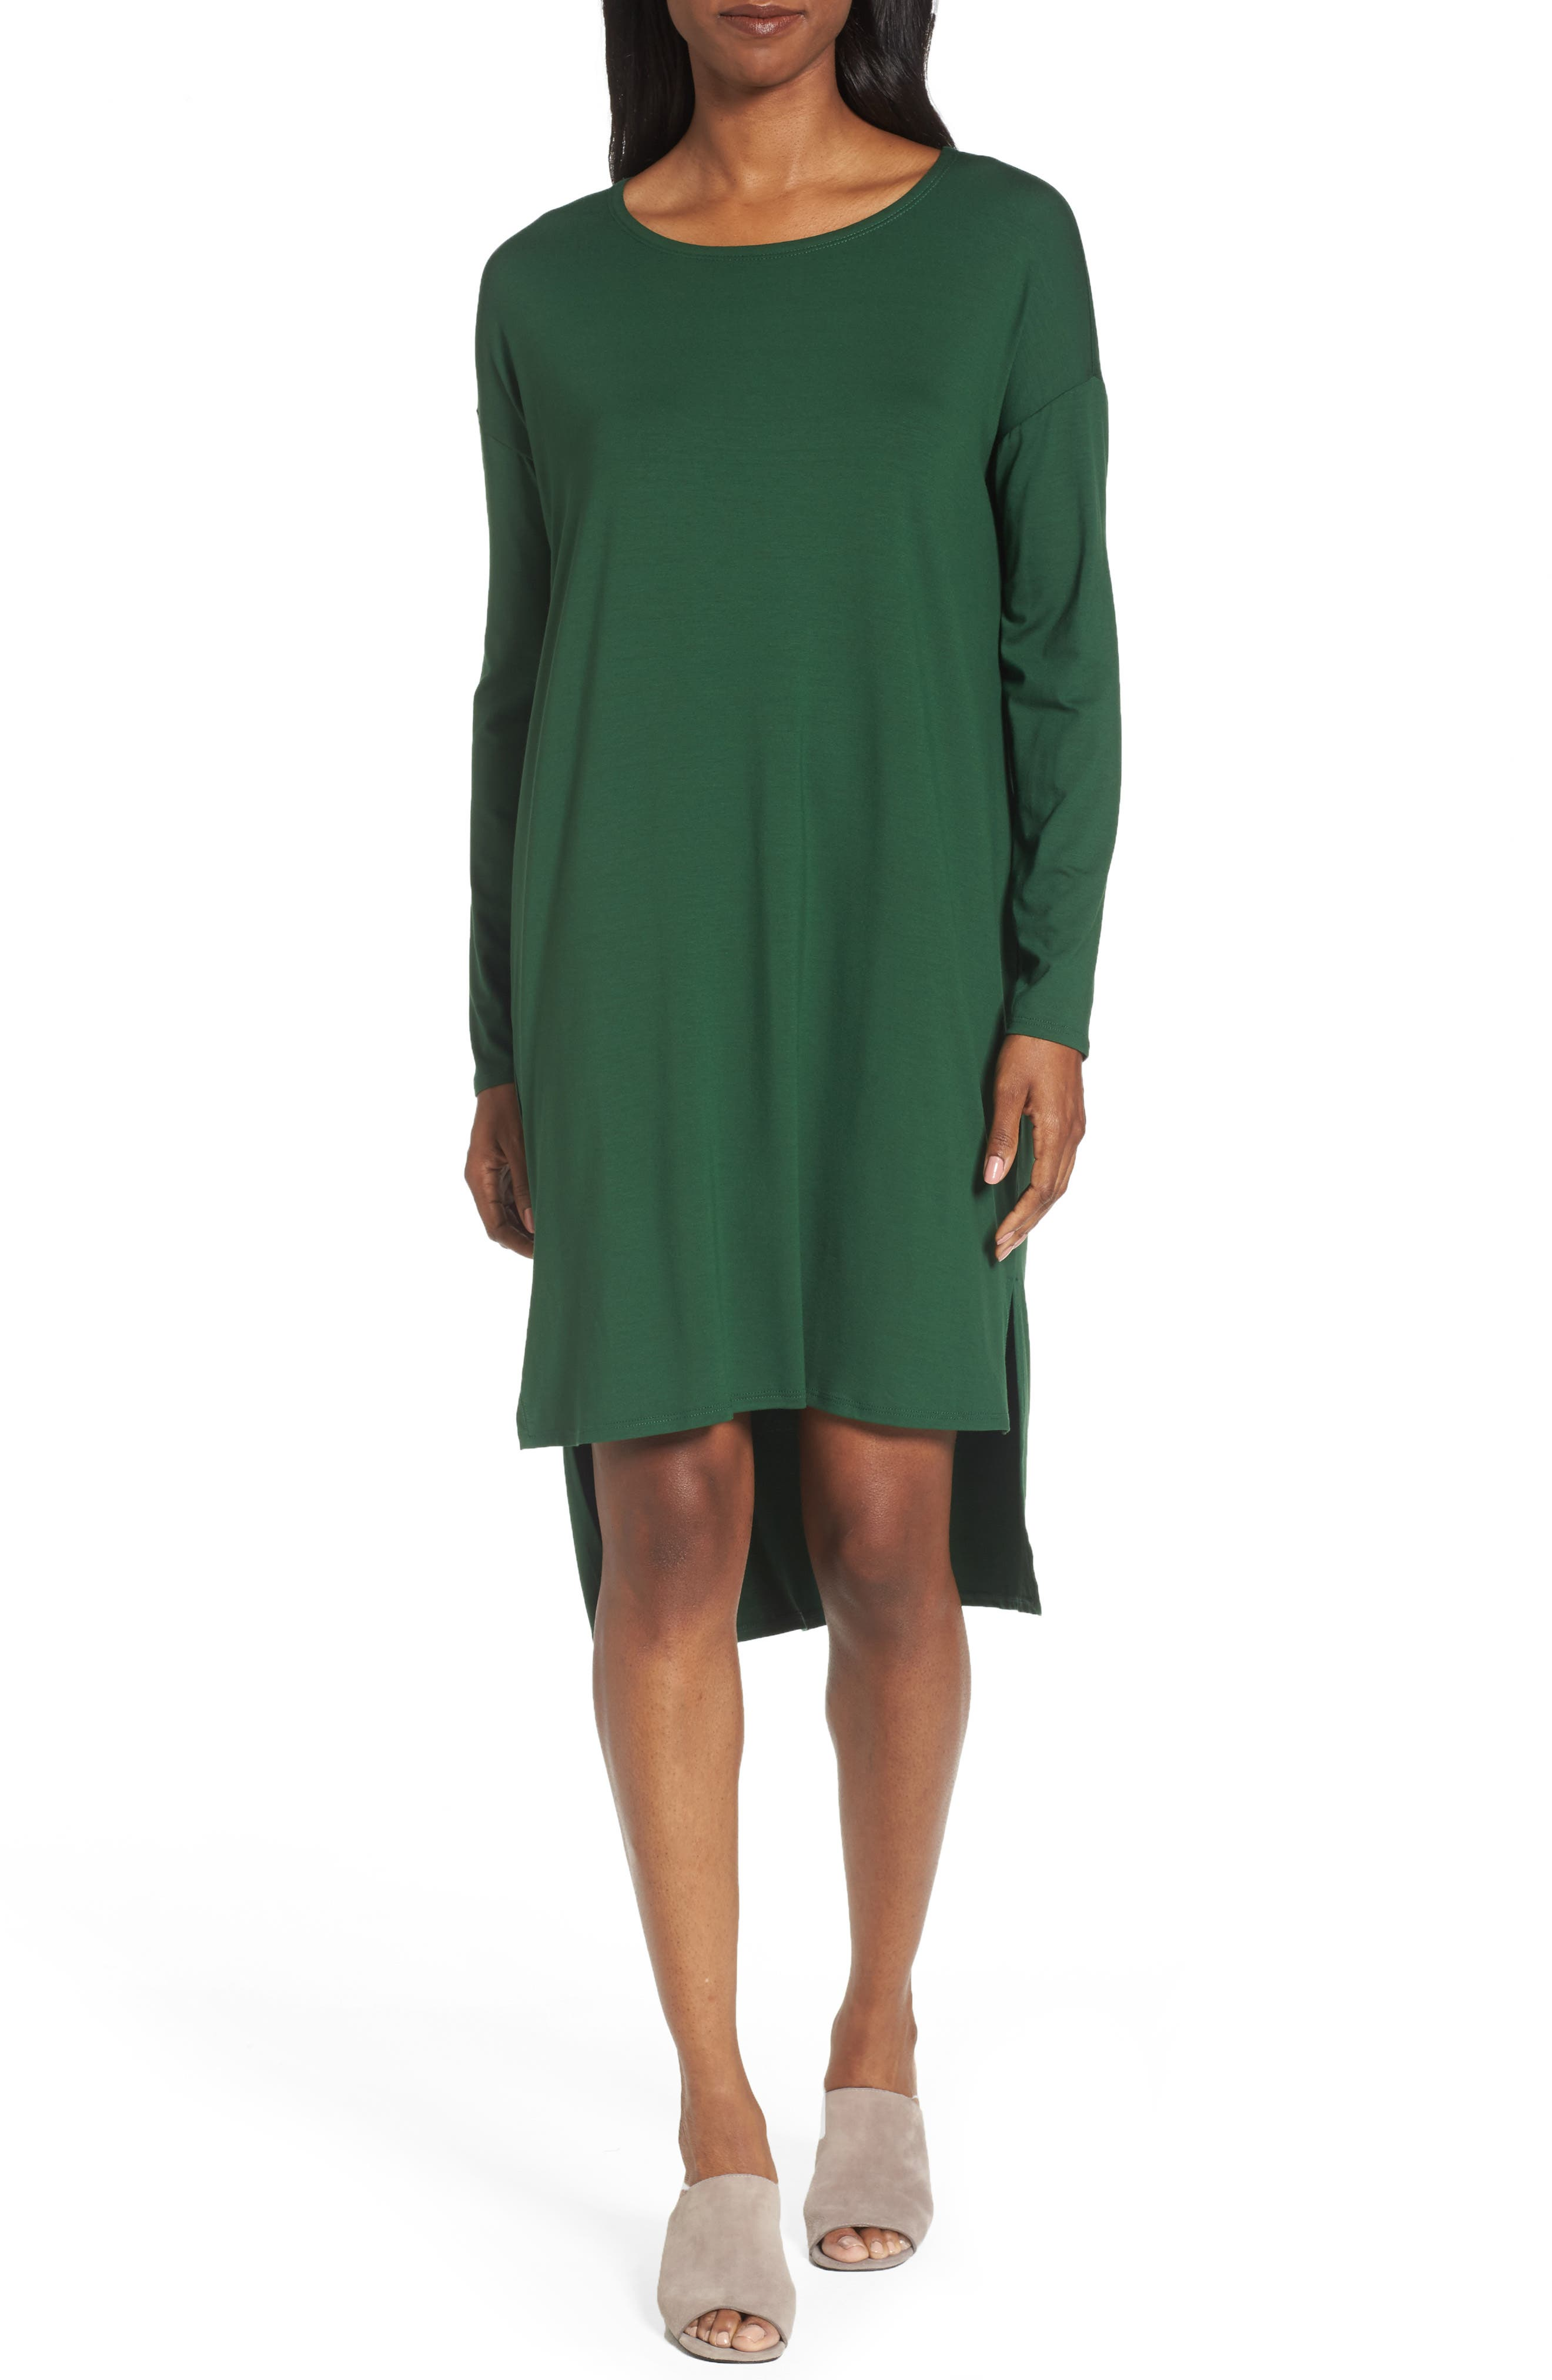 Alternate Image 1 Selected - Eileen Fisher High/Low Jersey Shift Dress (Regular & Petite)